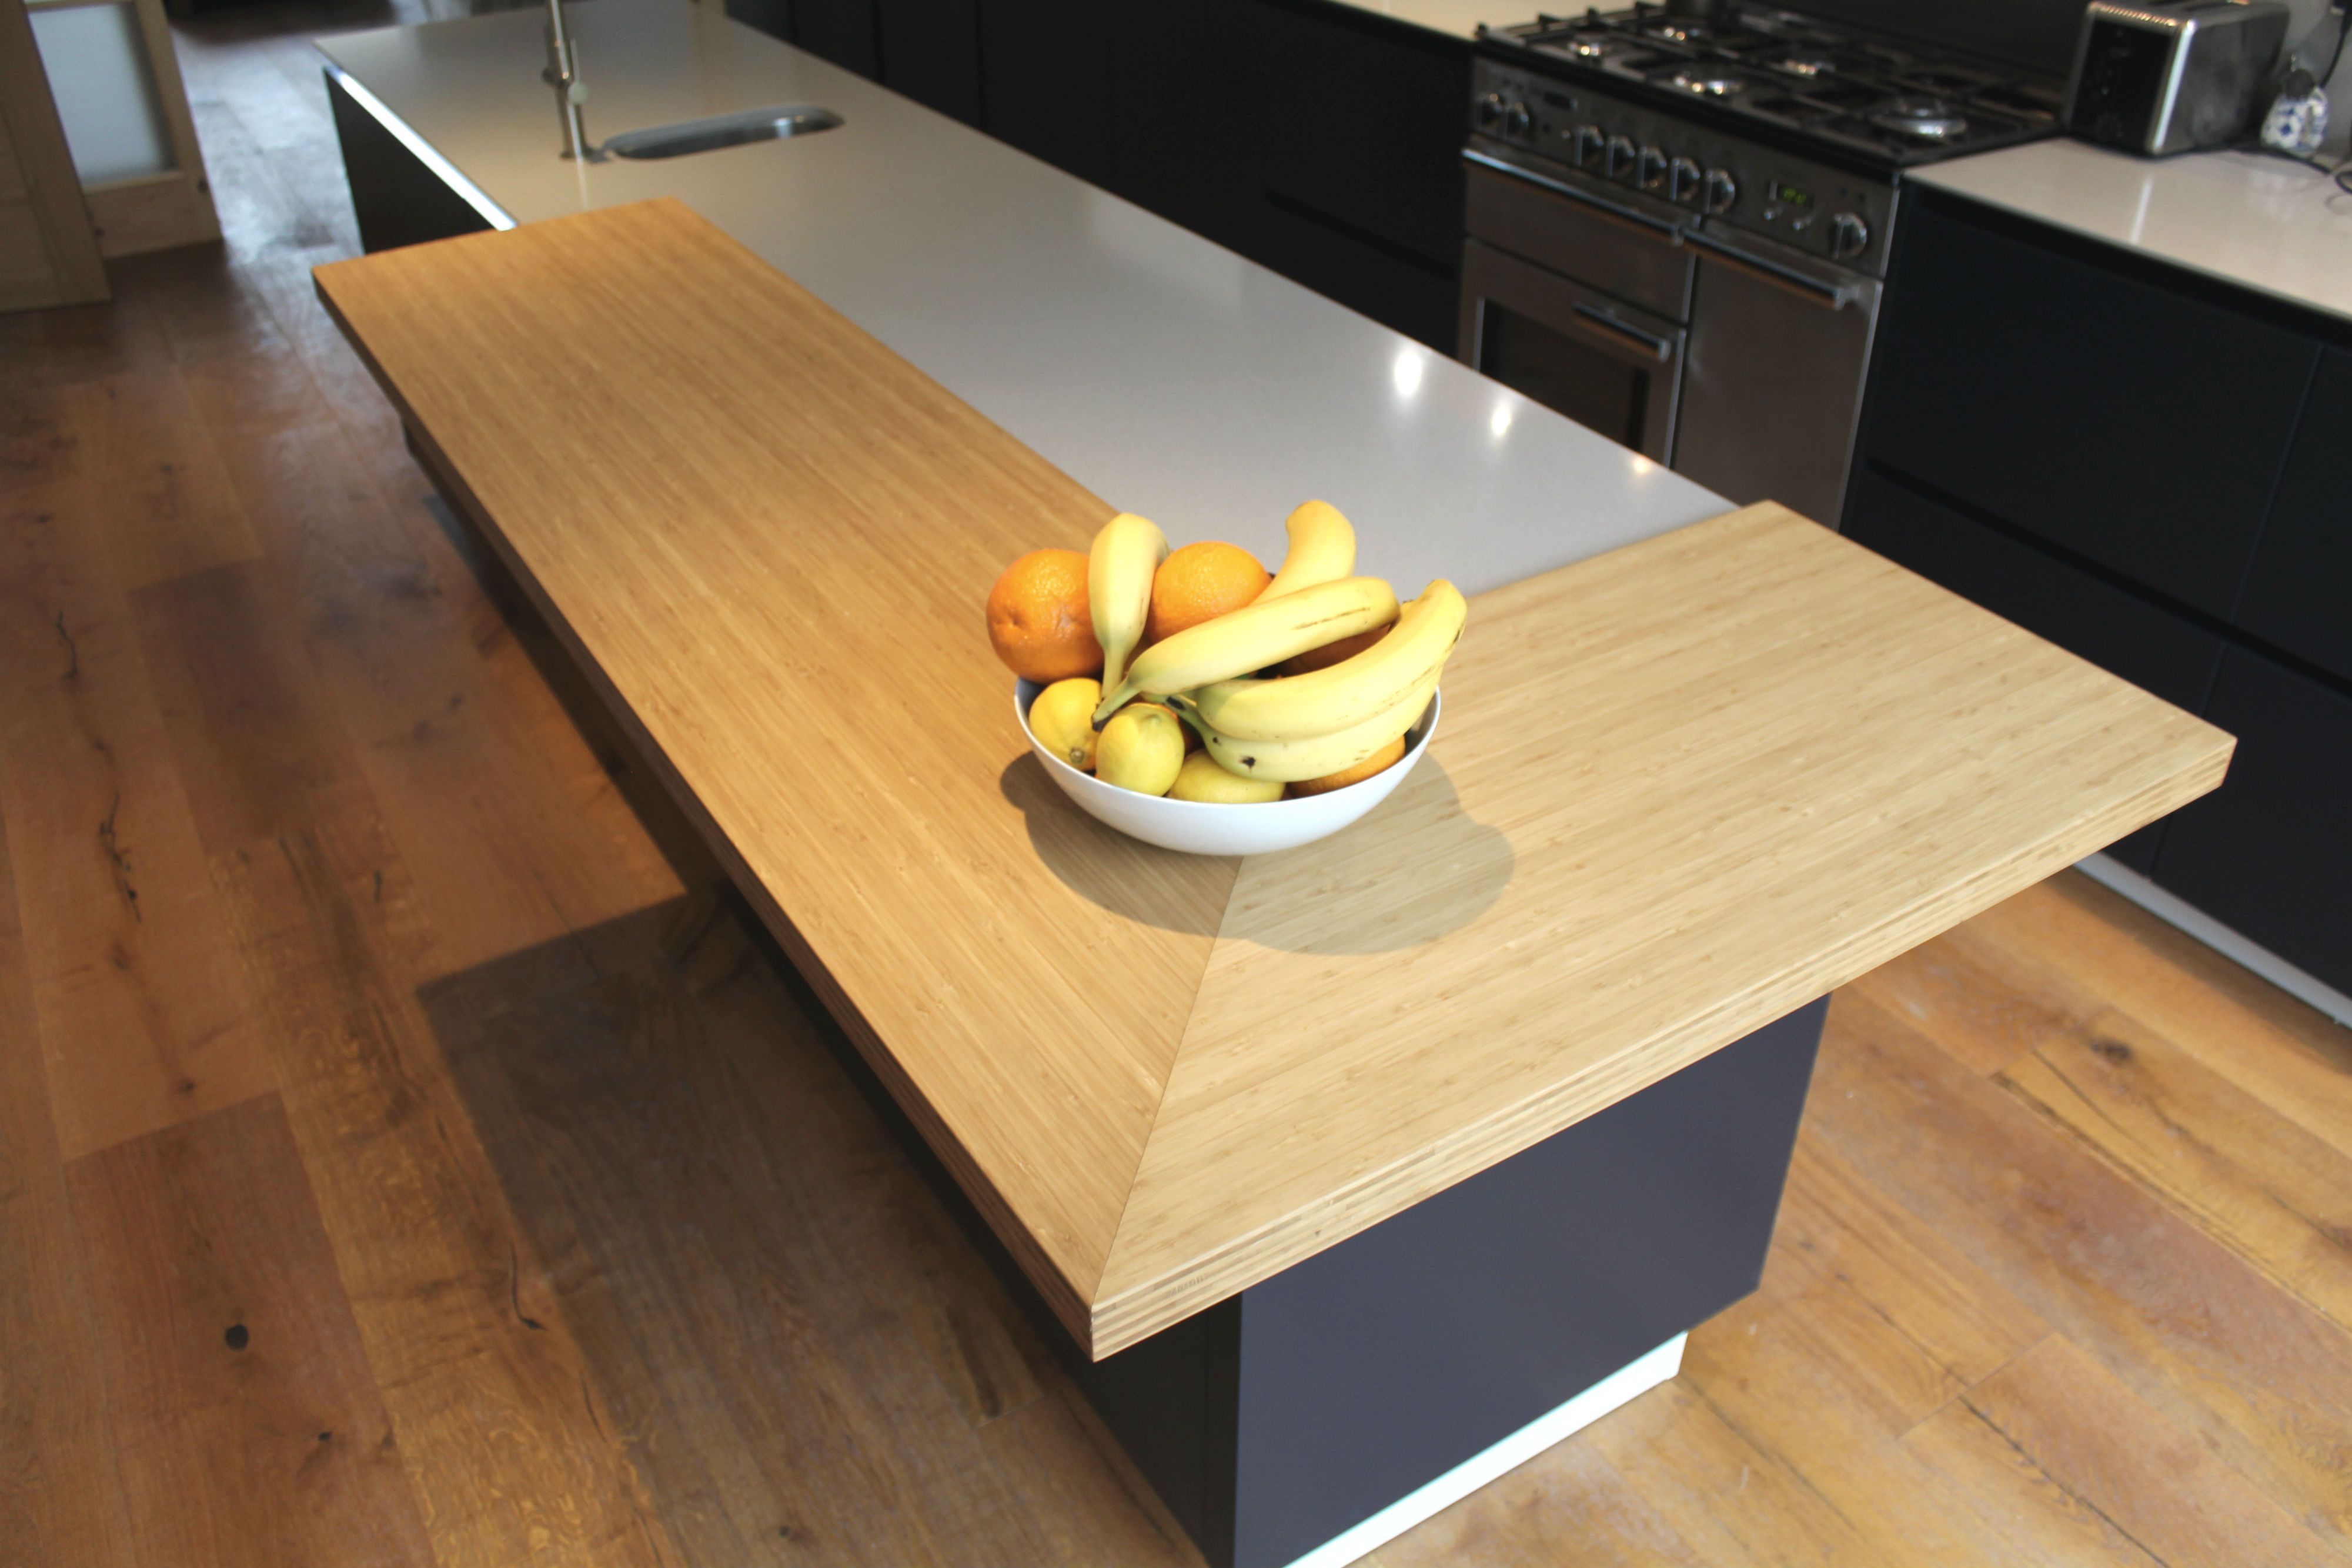 Superieur Spekva Bamboo Bar Top On ALNOSTAR SUND Kitchen By Phil Harflett Of The ALNO  Store Bristol | The ALNO Store Bristol #worktop #breakfastbar #wood #spekva  ...